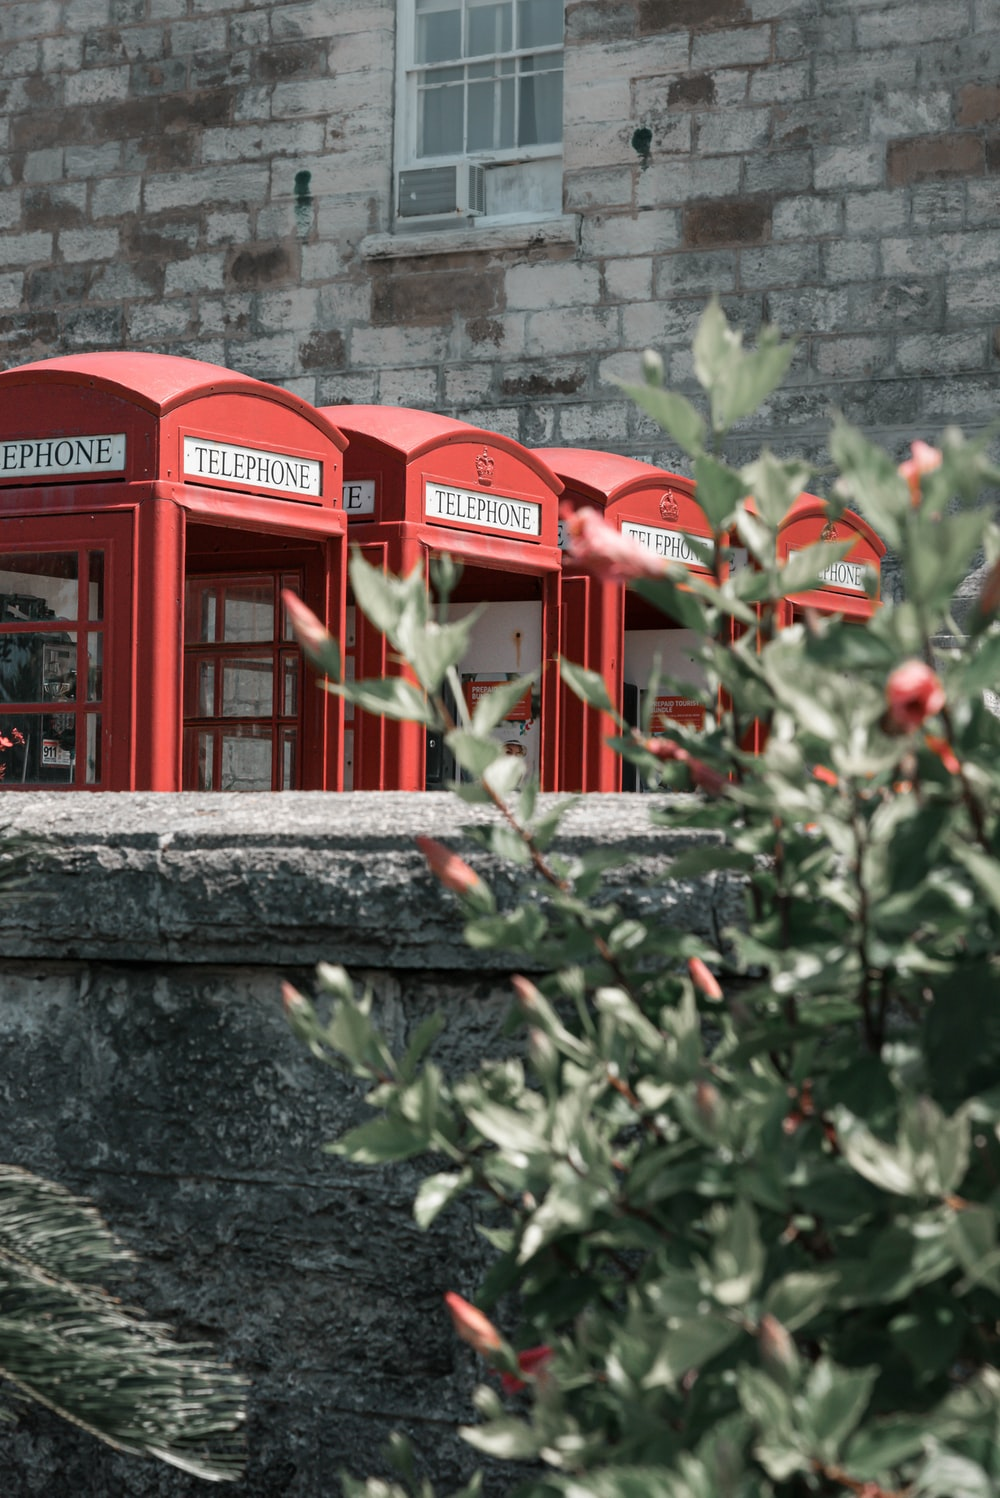 red telephone booth beside green plants